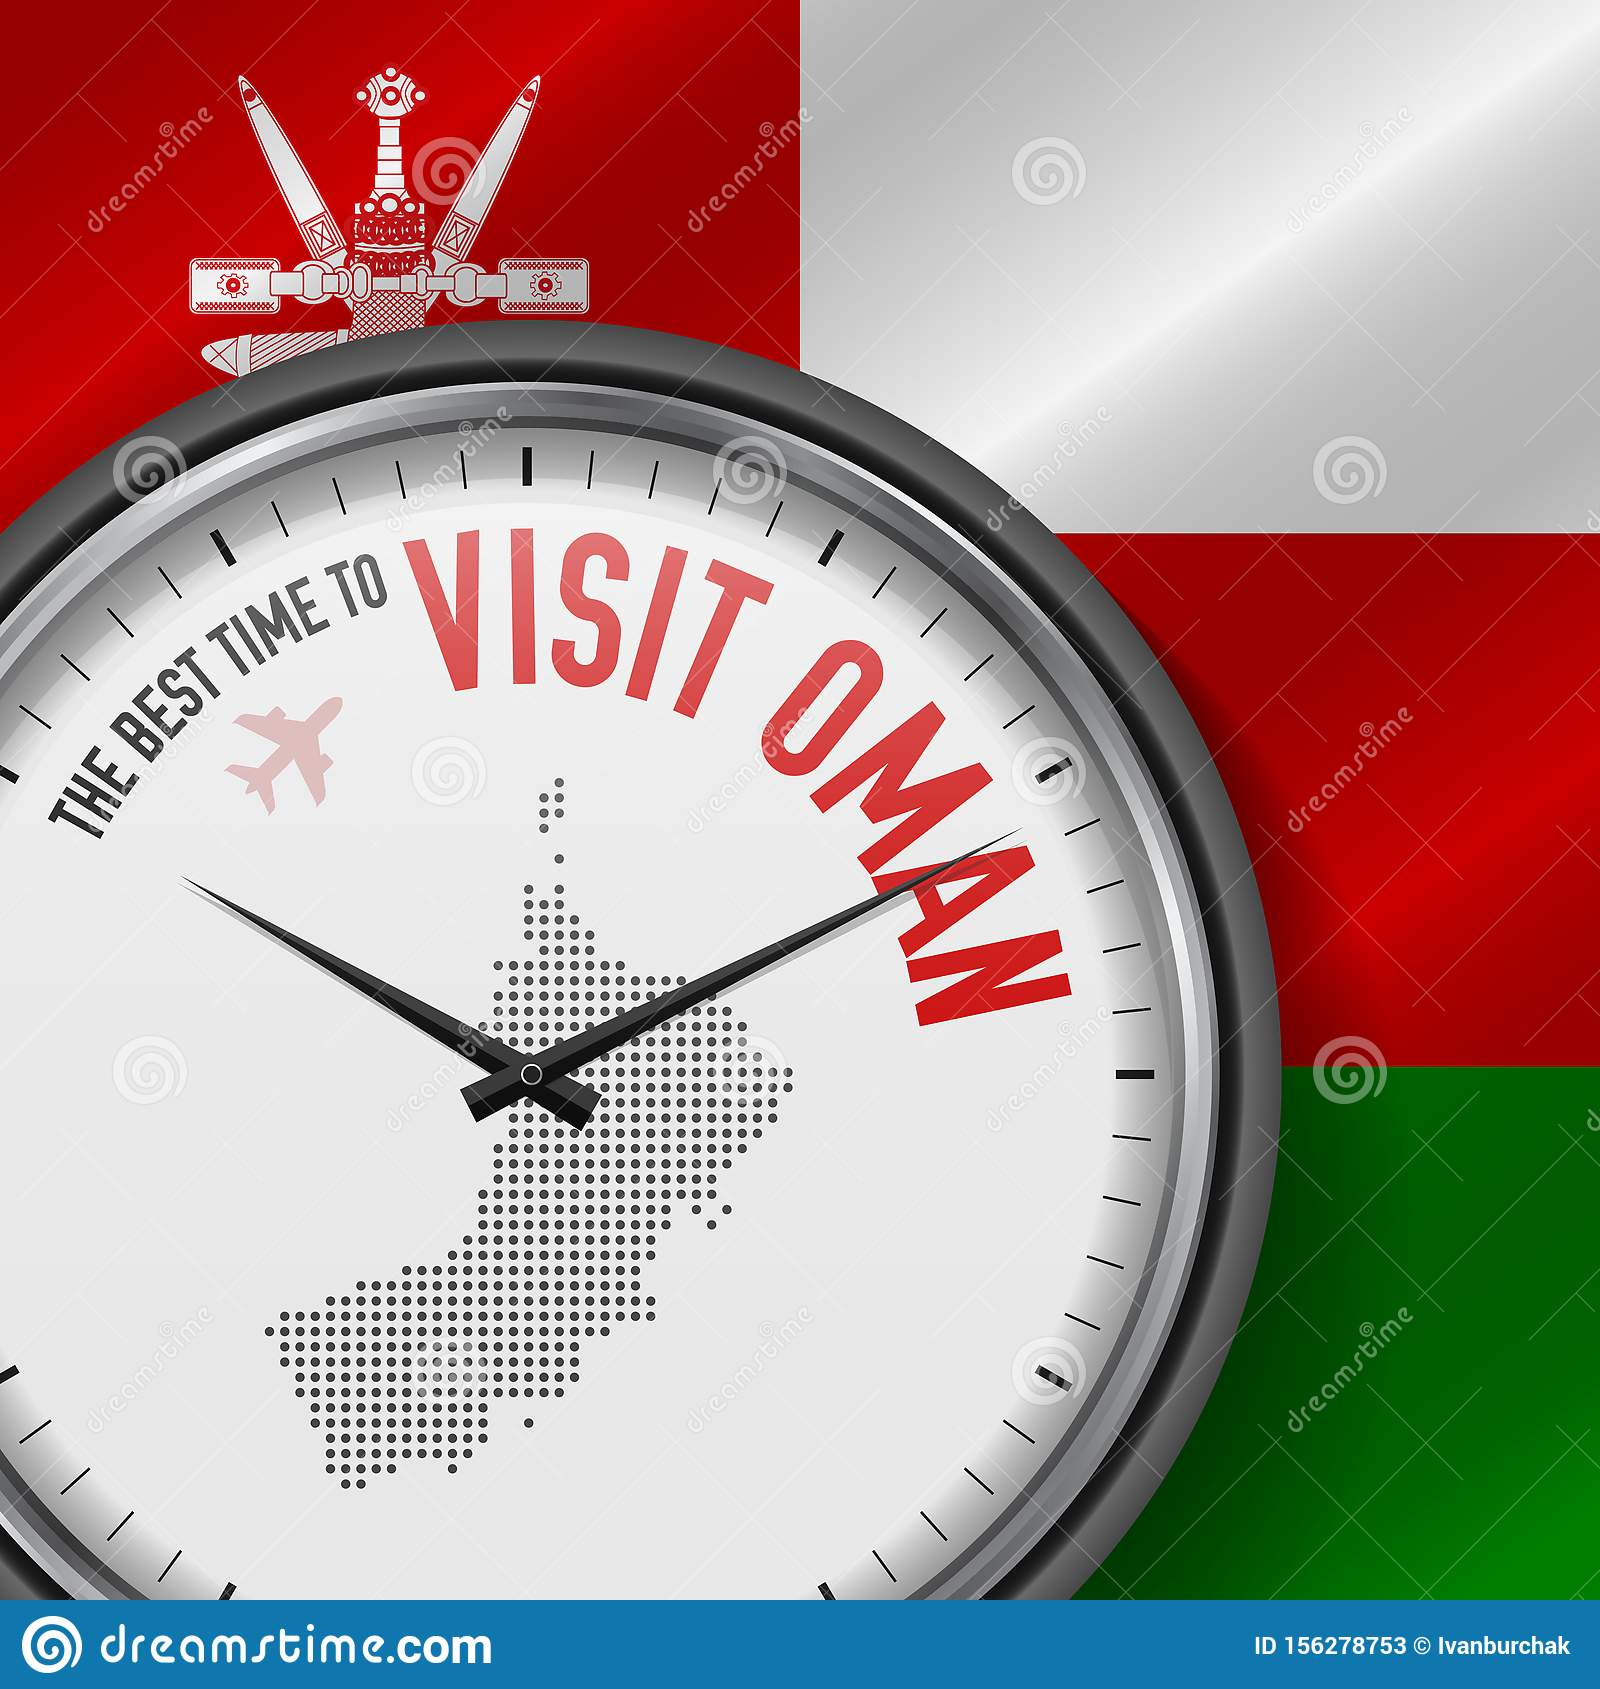 The Best Time to Visit Oman. Flight, Tour to Oman. Vector Illustration